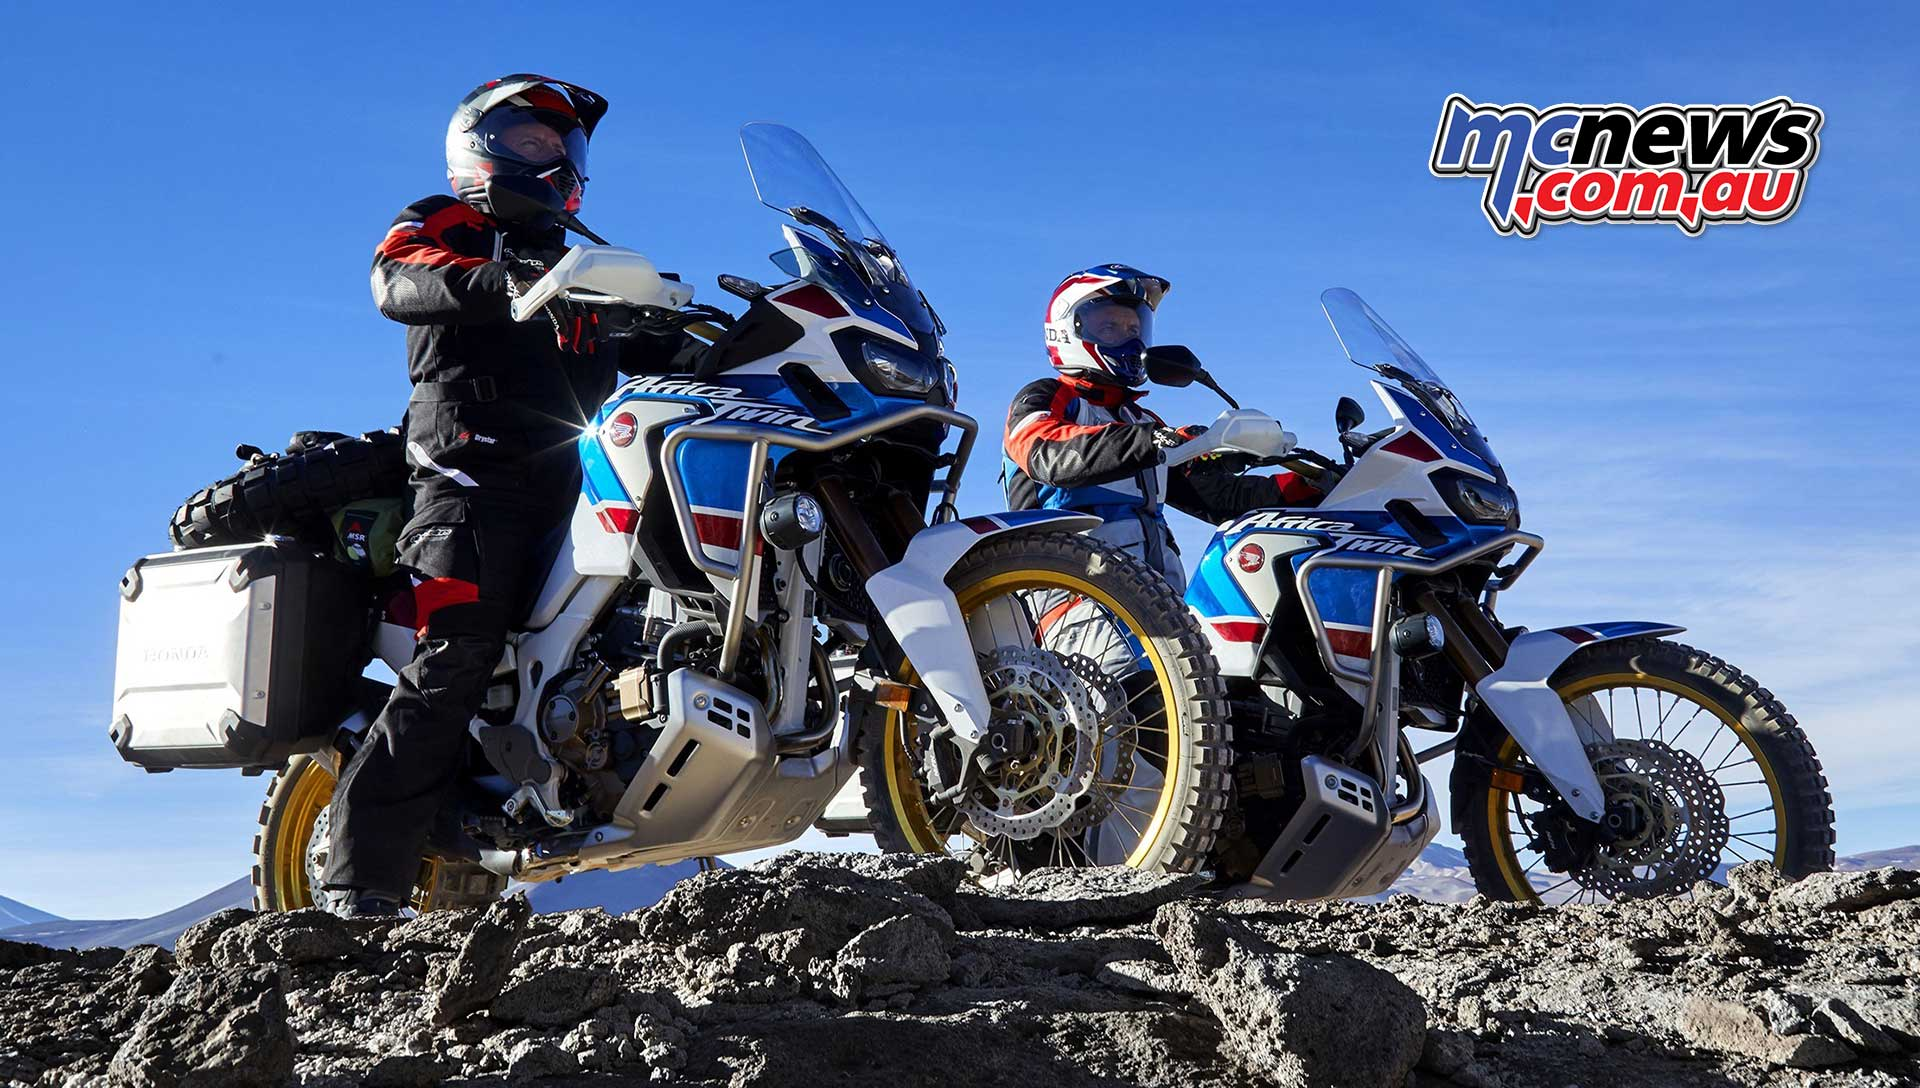 2019 Africa Twin Adventure Sports Now In Dealers Mcnews